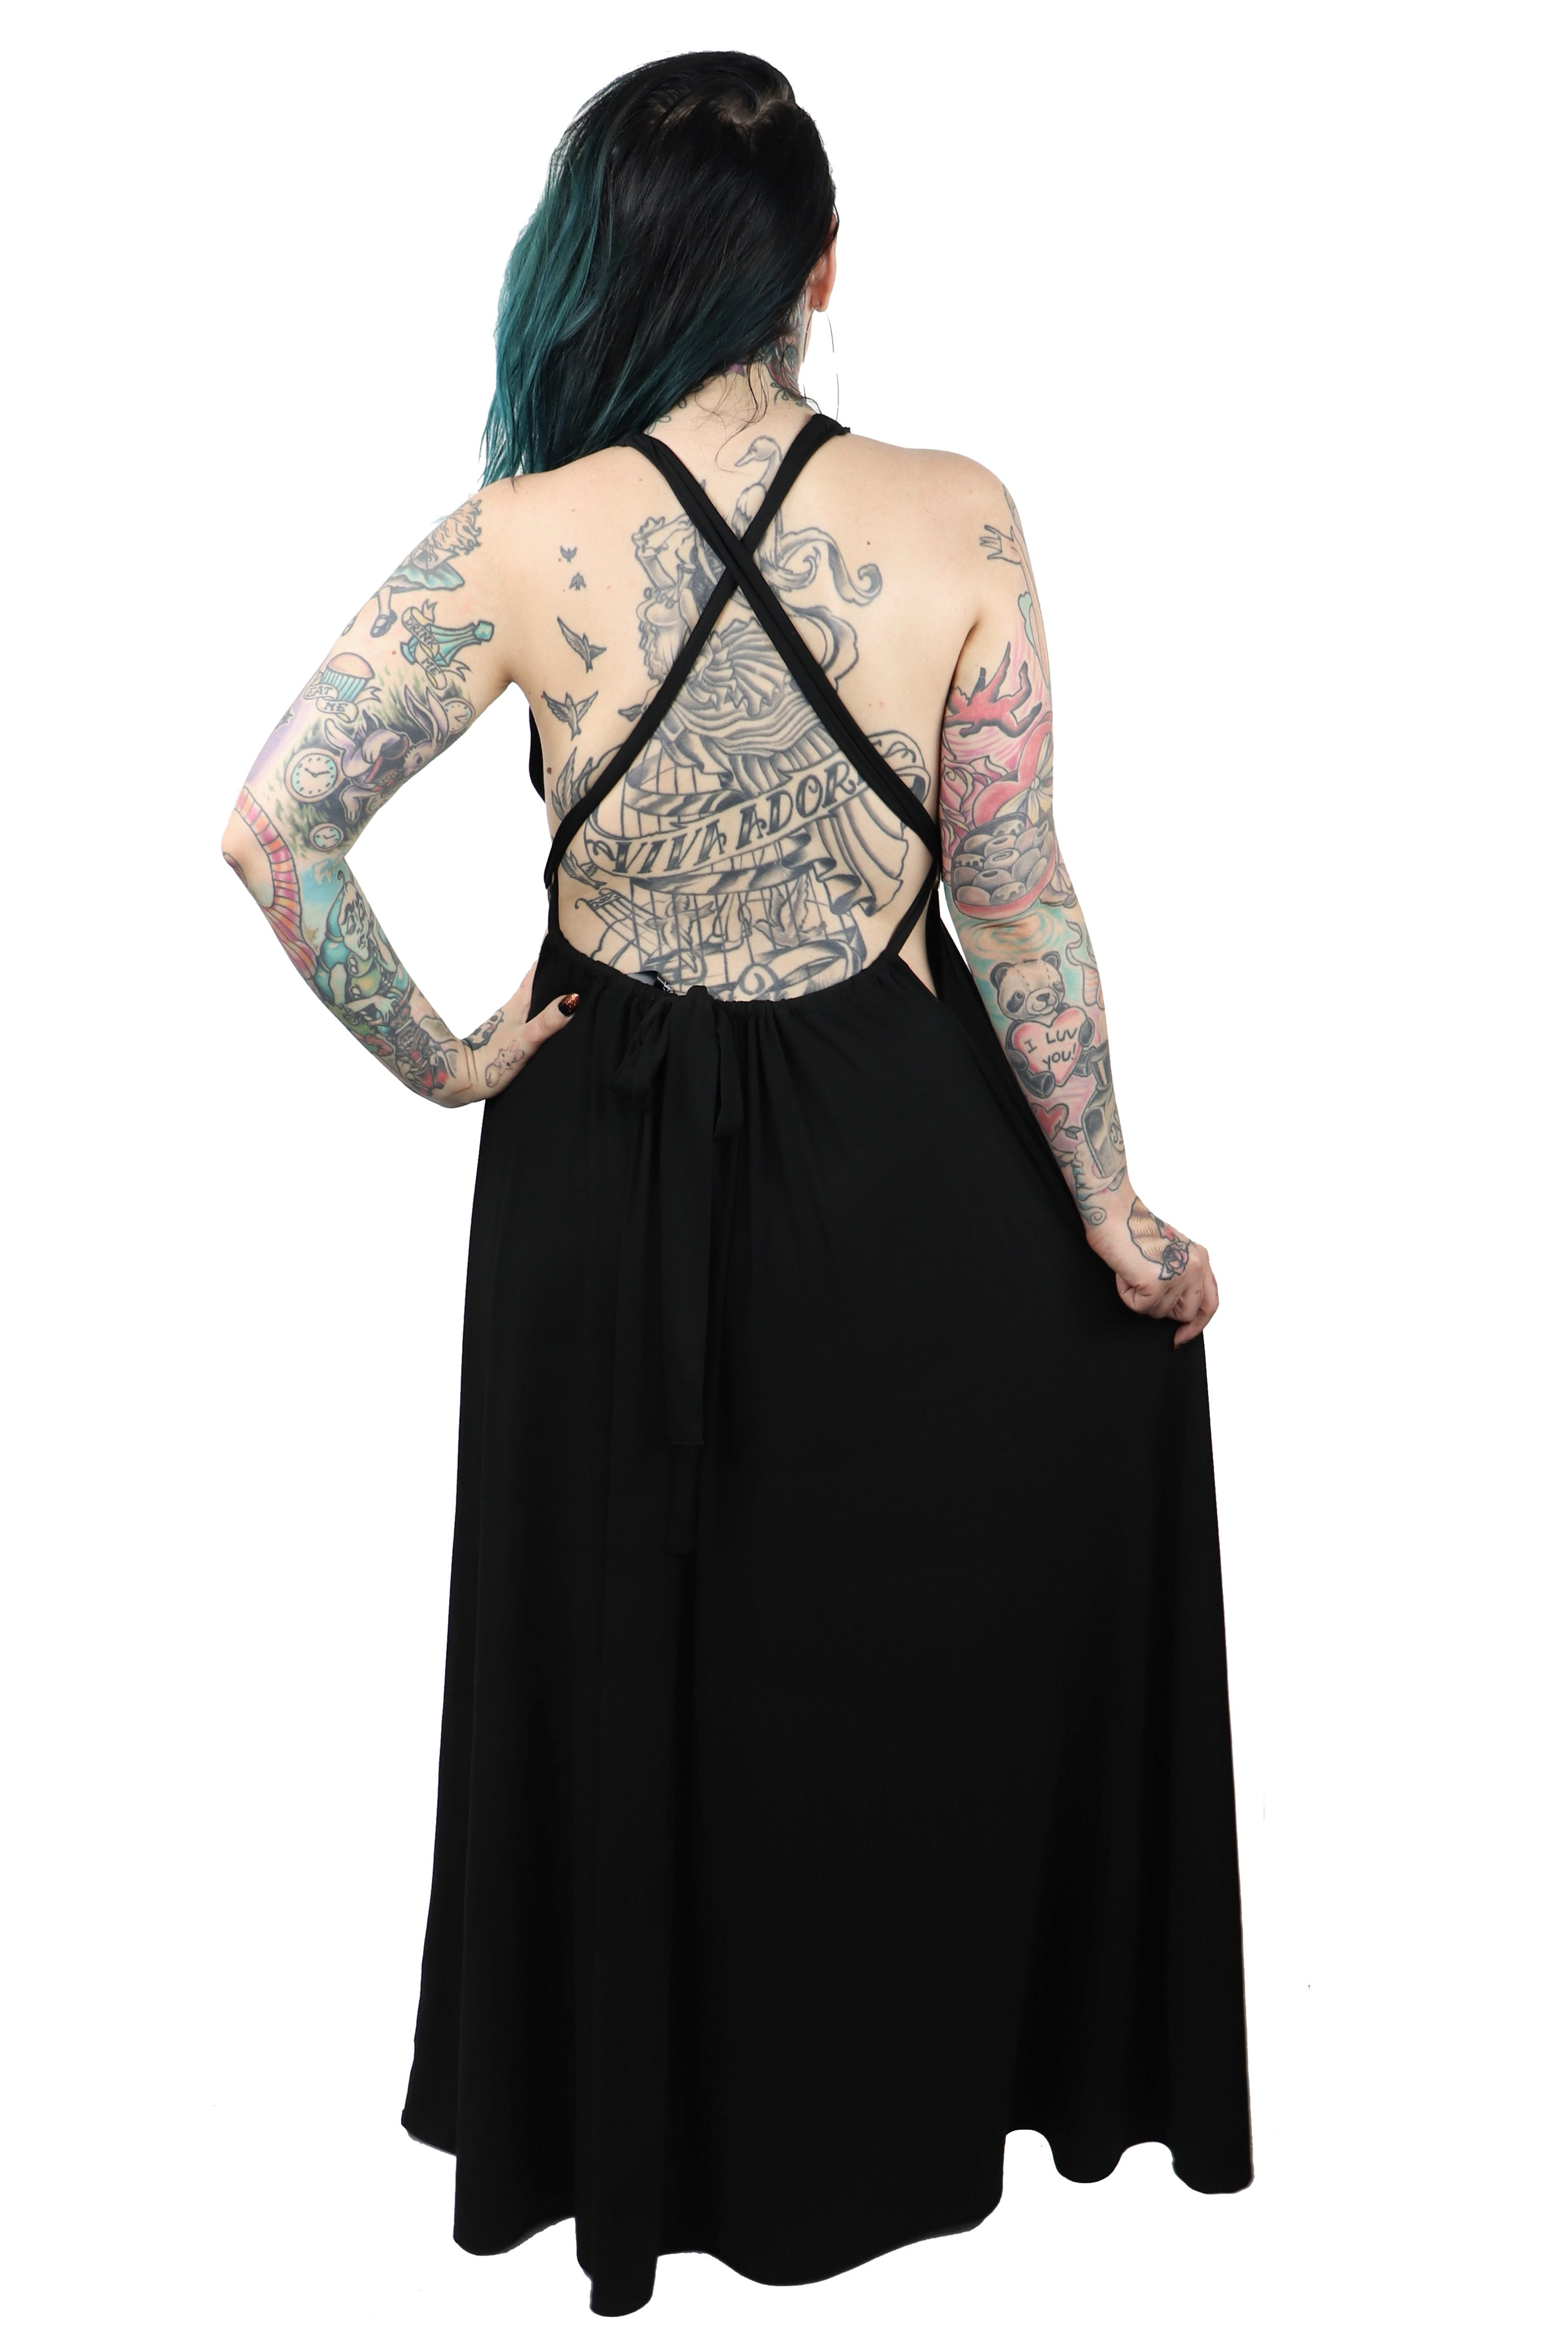 Hot Girl Summer Maxi Dress - Limited Edition - only Xs/S left!